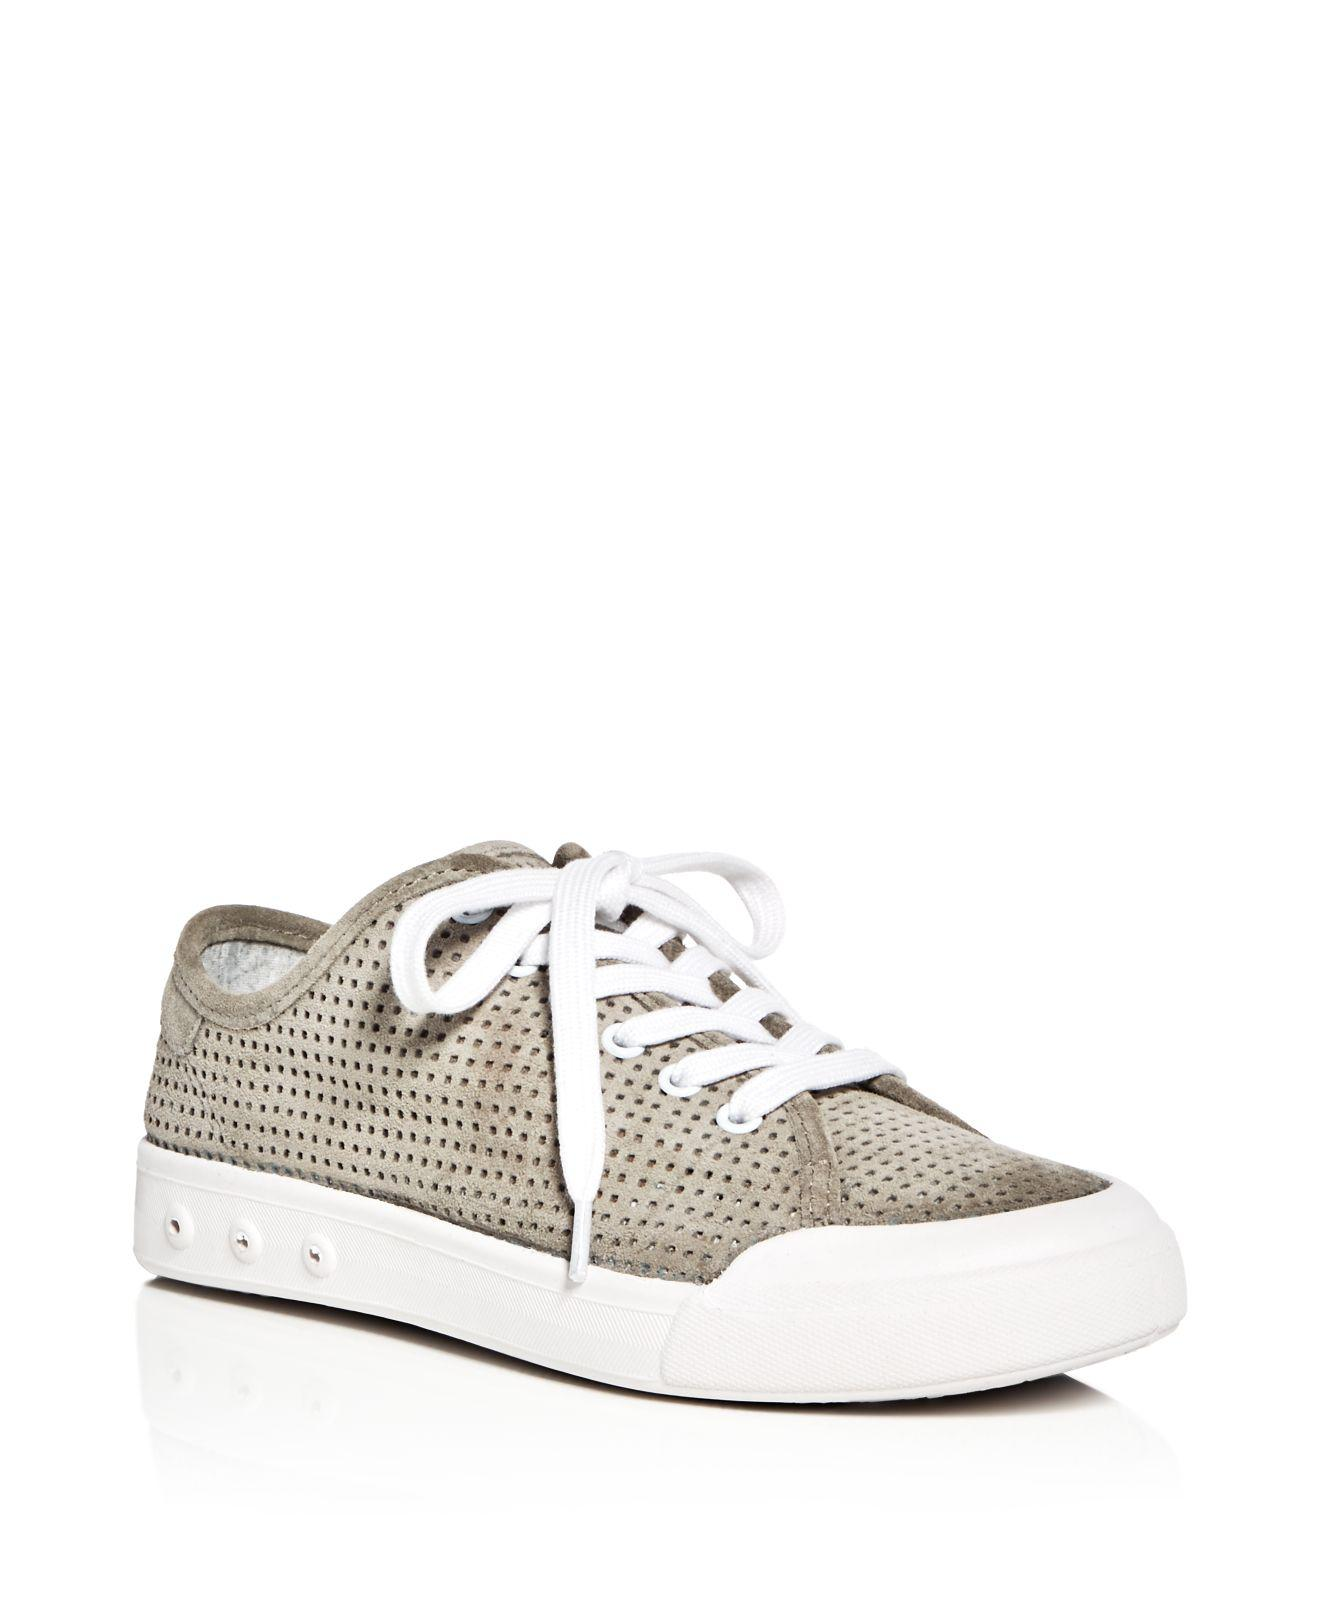 RAG&BONE Women's Standard Issue Leather Low Top Lace Up Sneakers